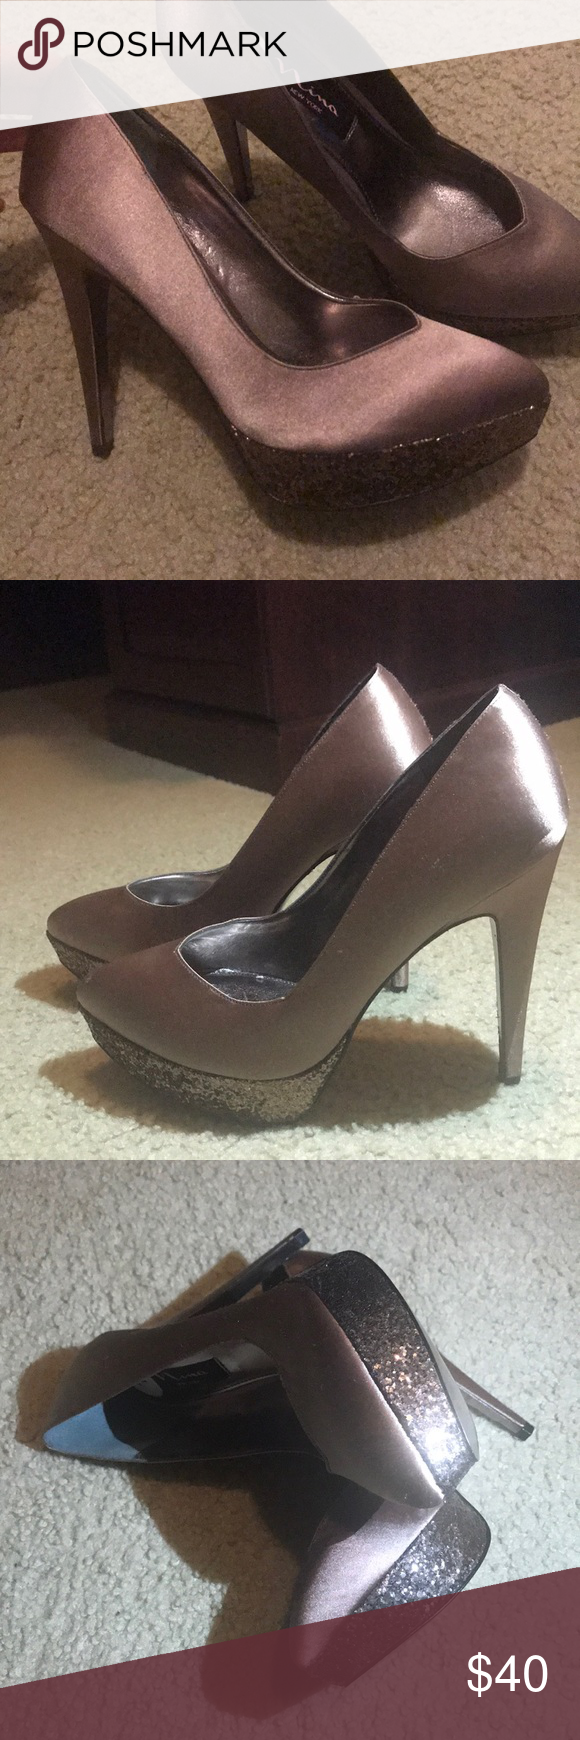 "f008168011e2 Nina New York pumps size 7 NWOT mocha color Beautiful Nina pumps  comfortable 5""heel and 1"" front NWOT just sitting in my closet haven t used  them they are ..."